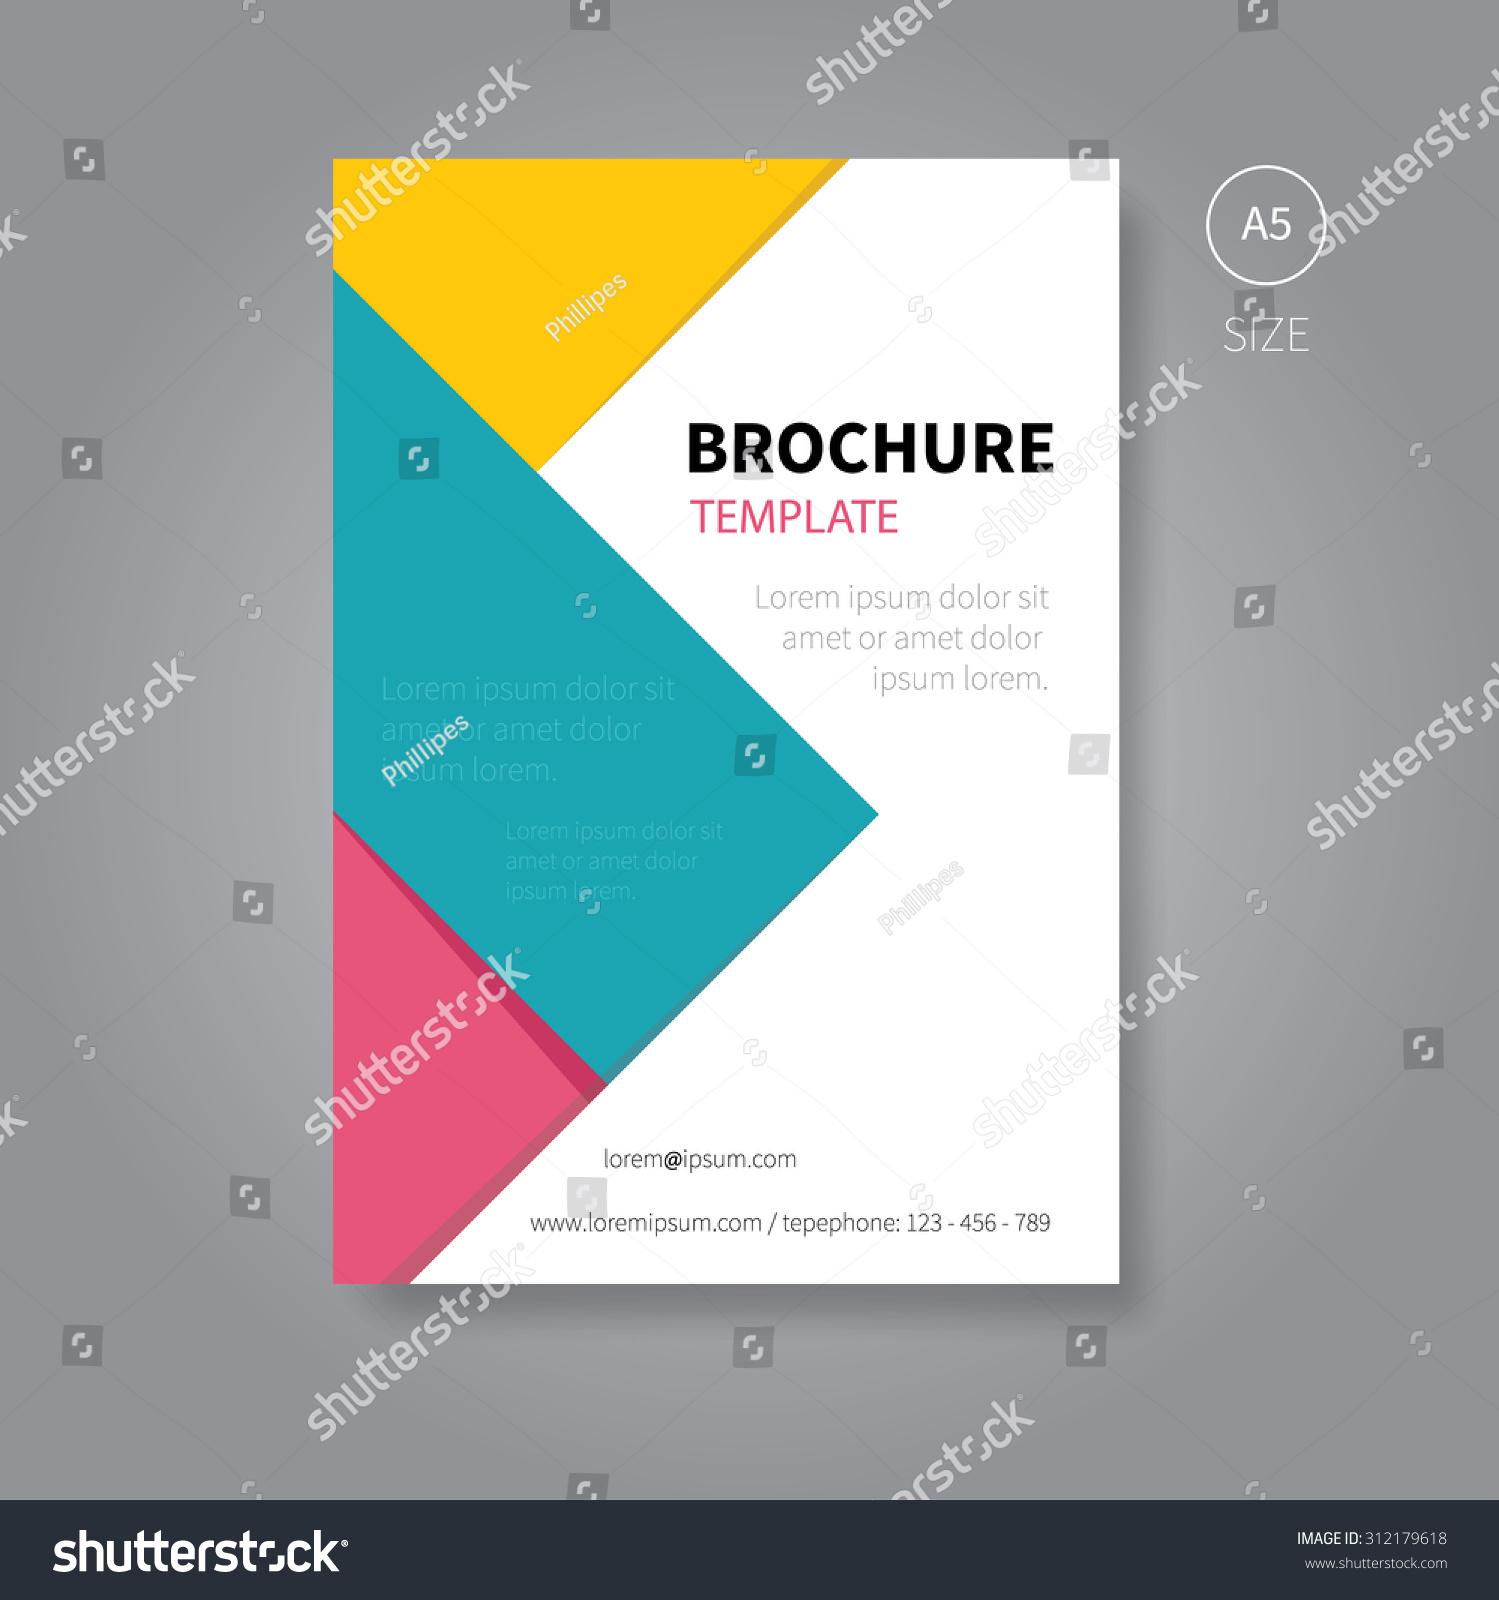 Vector Brochure Flyer Magazine: Modern Vector Brochure Flyer With Colour Shapes For Book